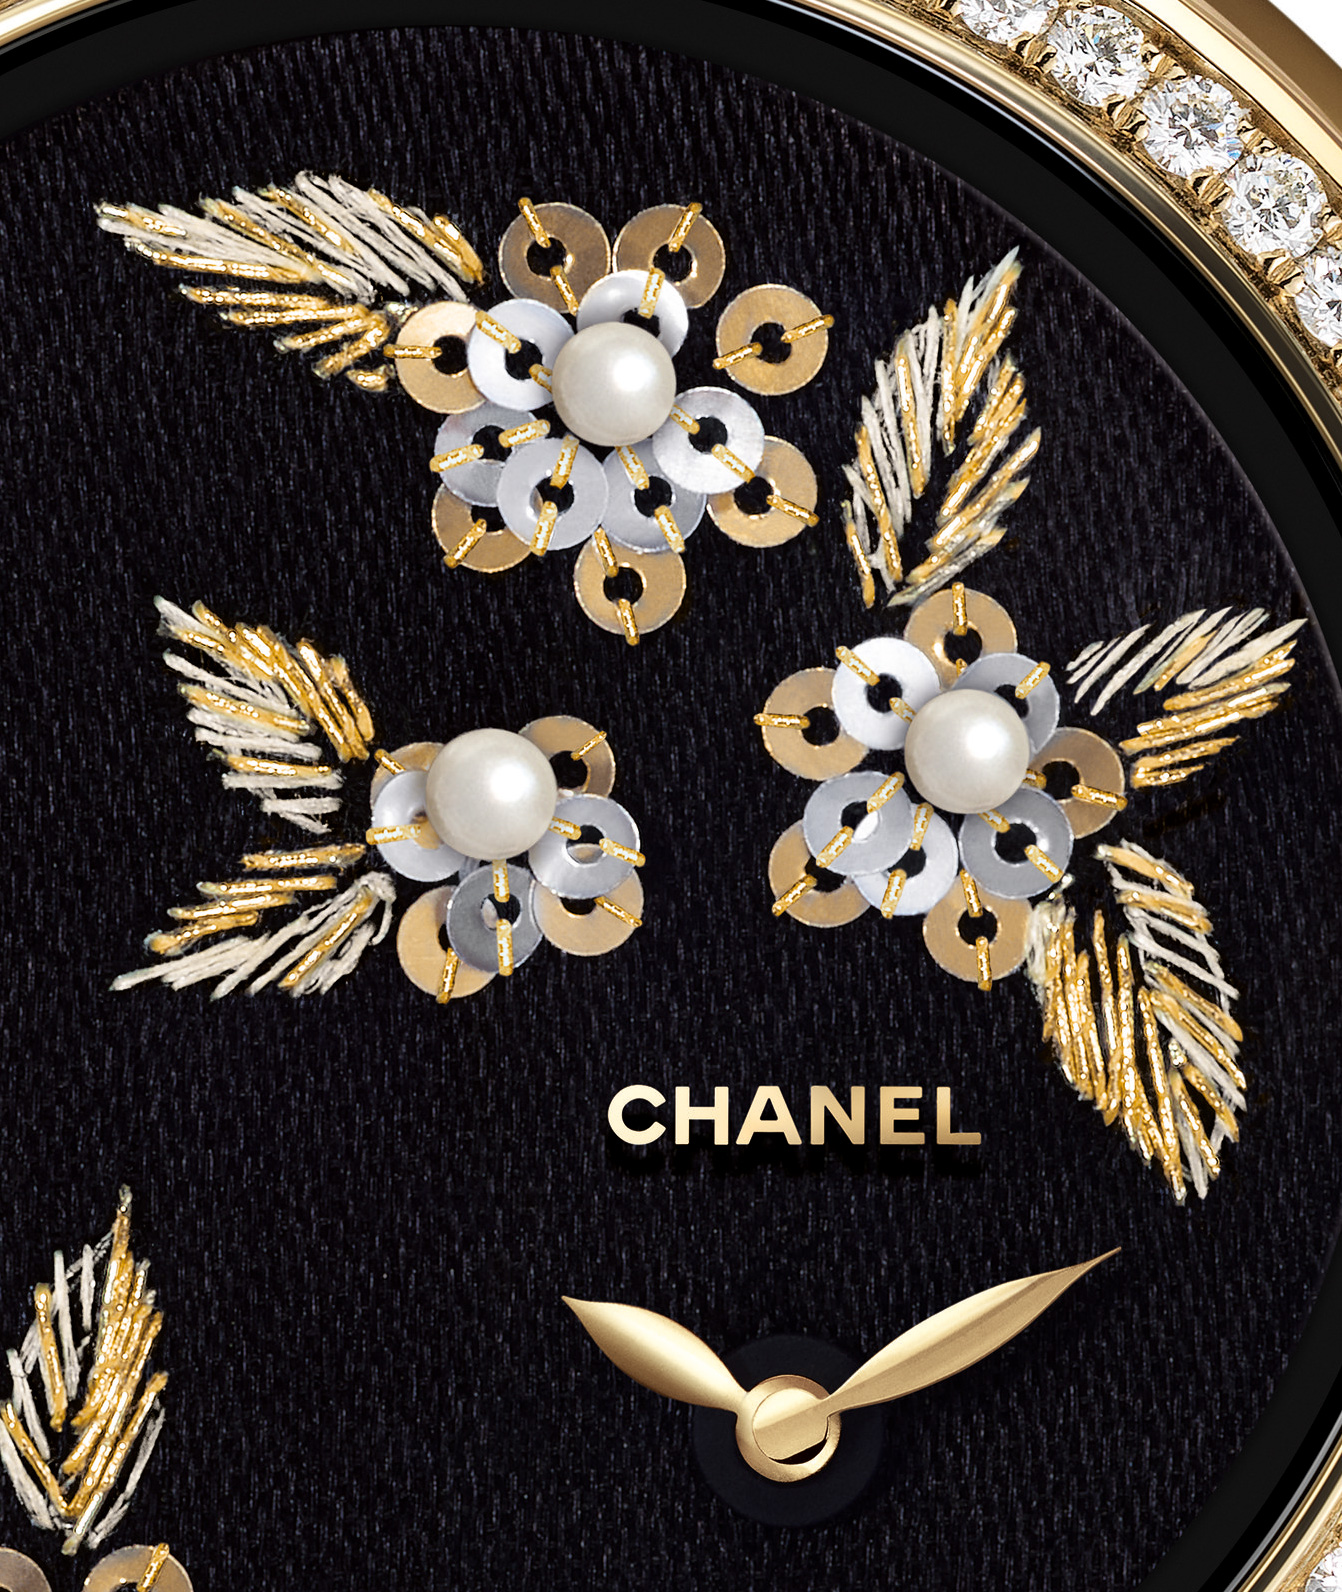 Chanel Unveils The Mademoiselle Priv Camlia With A Gold Diamond